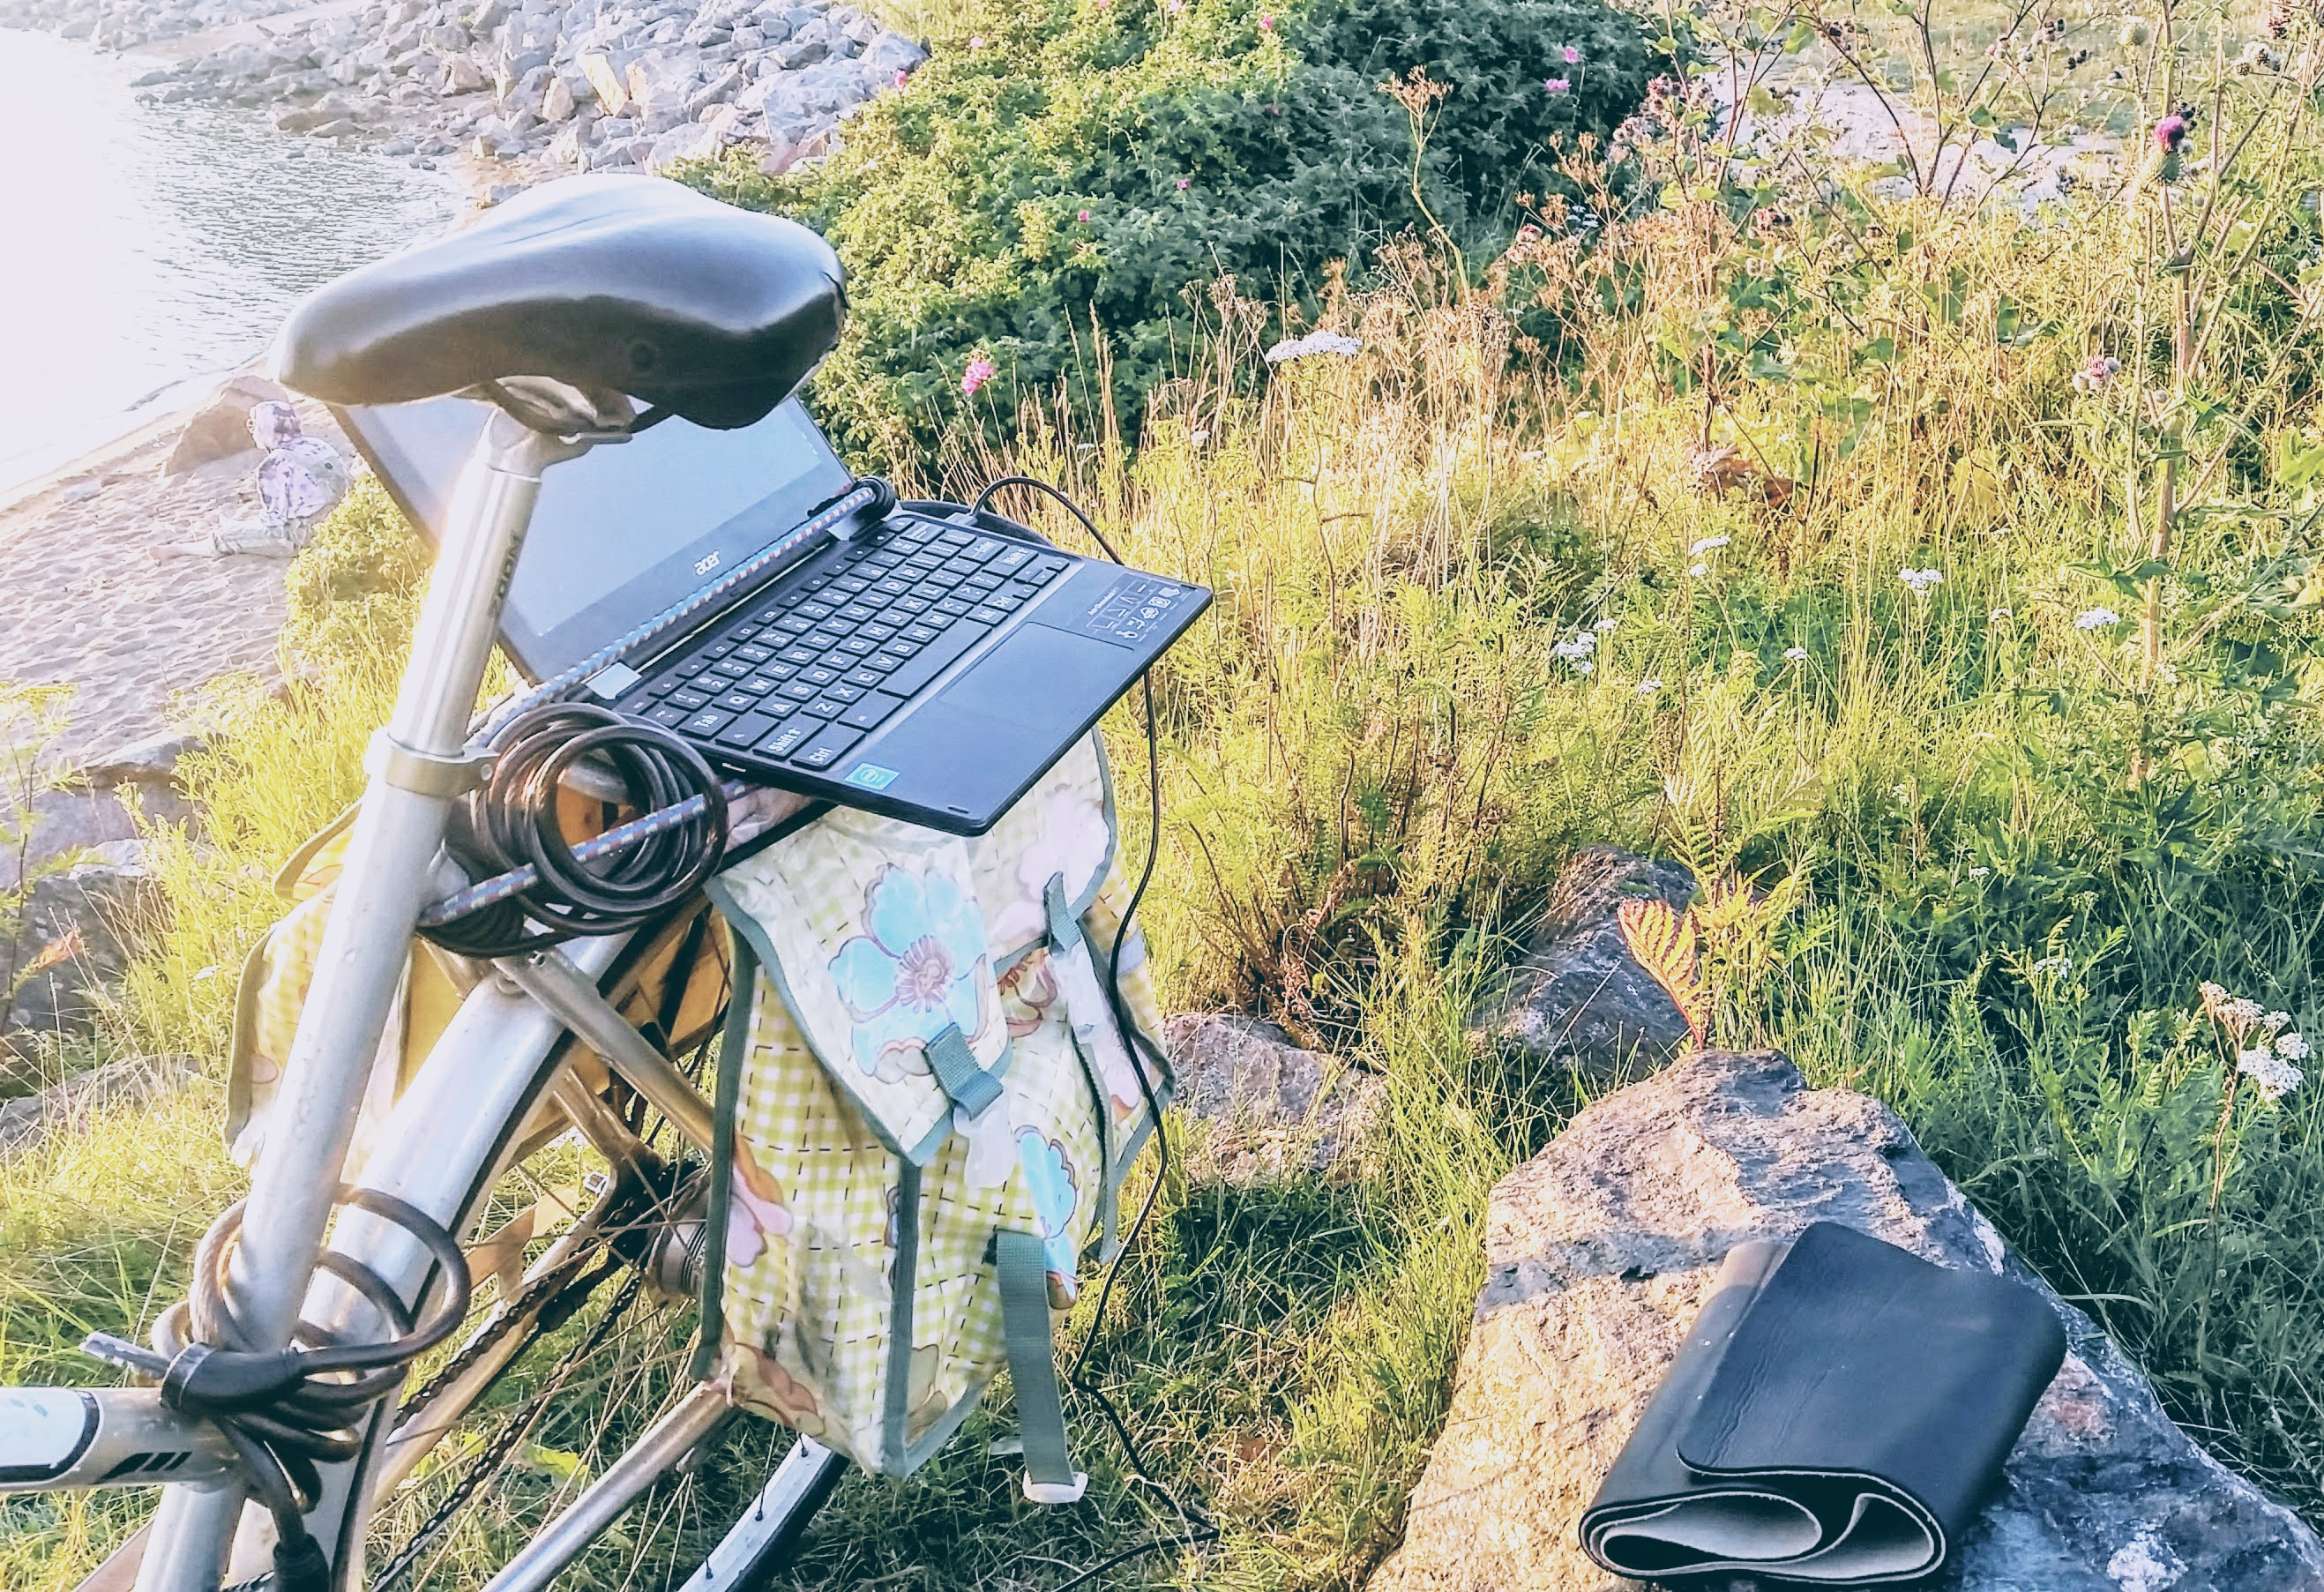 A laptop on the back rack of a bicycle, used as desk